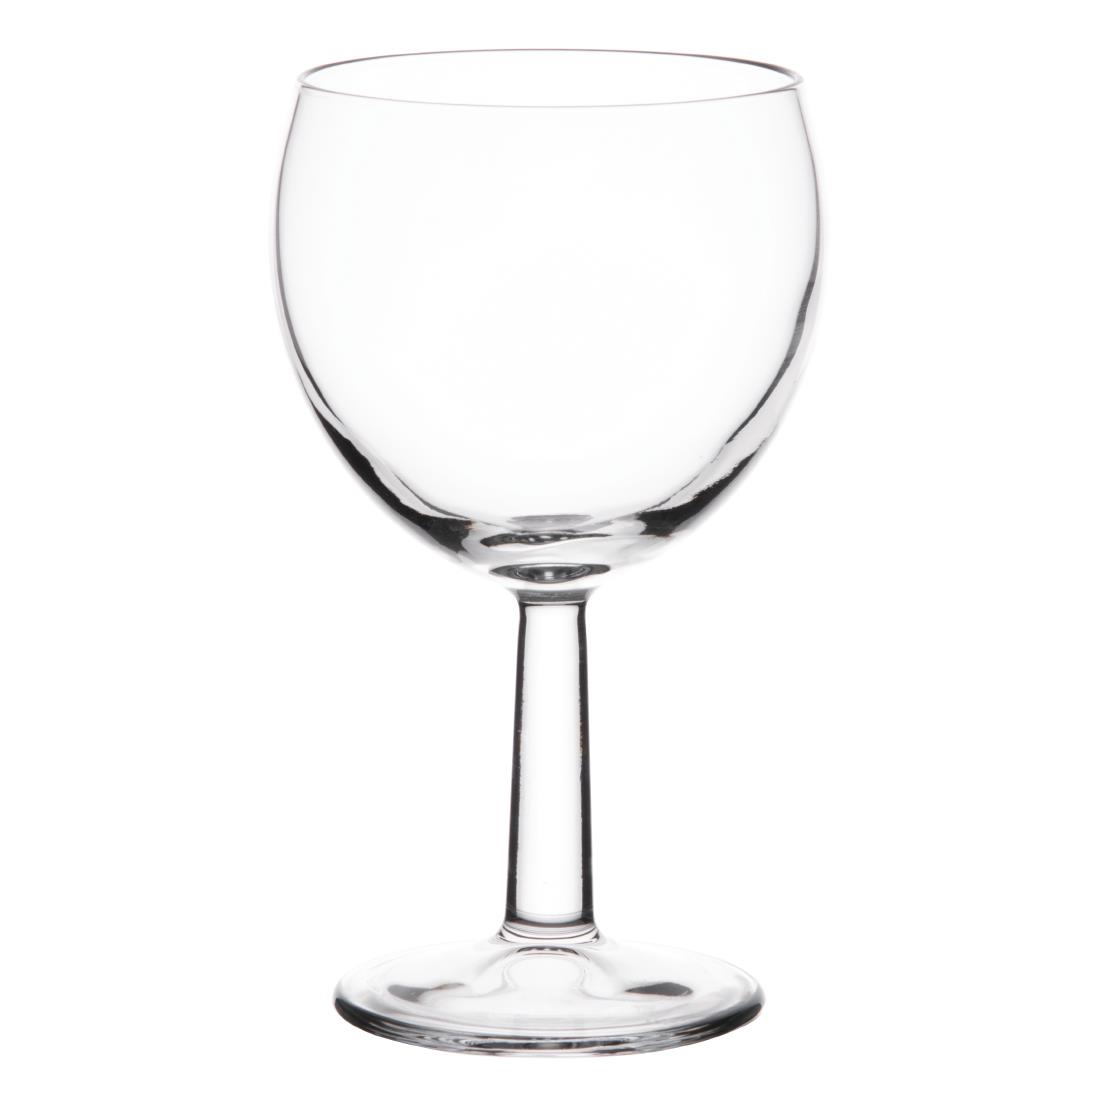 Image of Arcoroc Ballon Wine Goblets 190ml CE Marked at 125ml (Pack of 12) Pack of 12